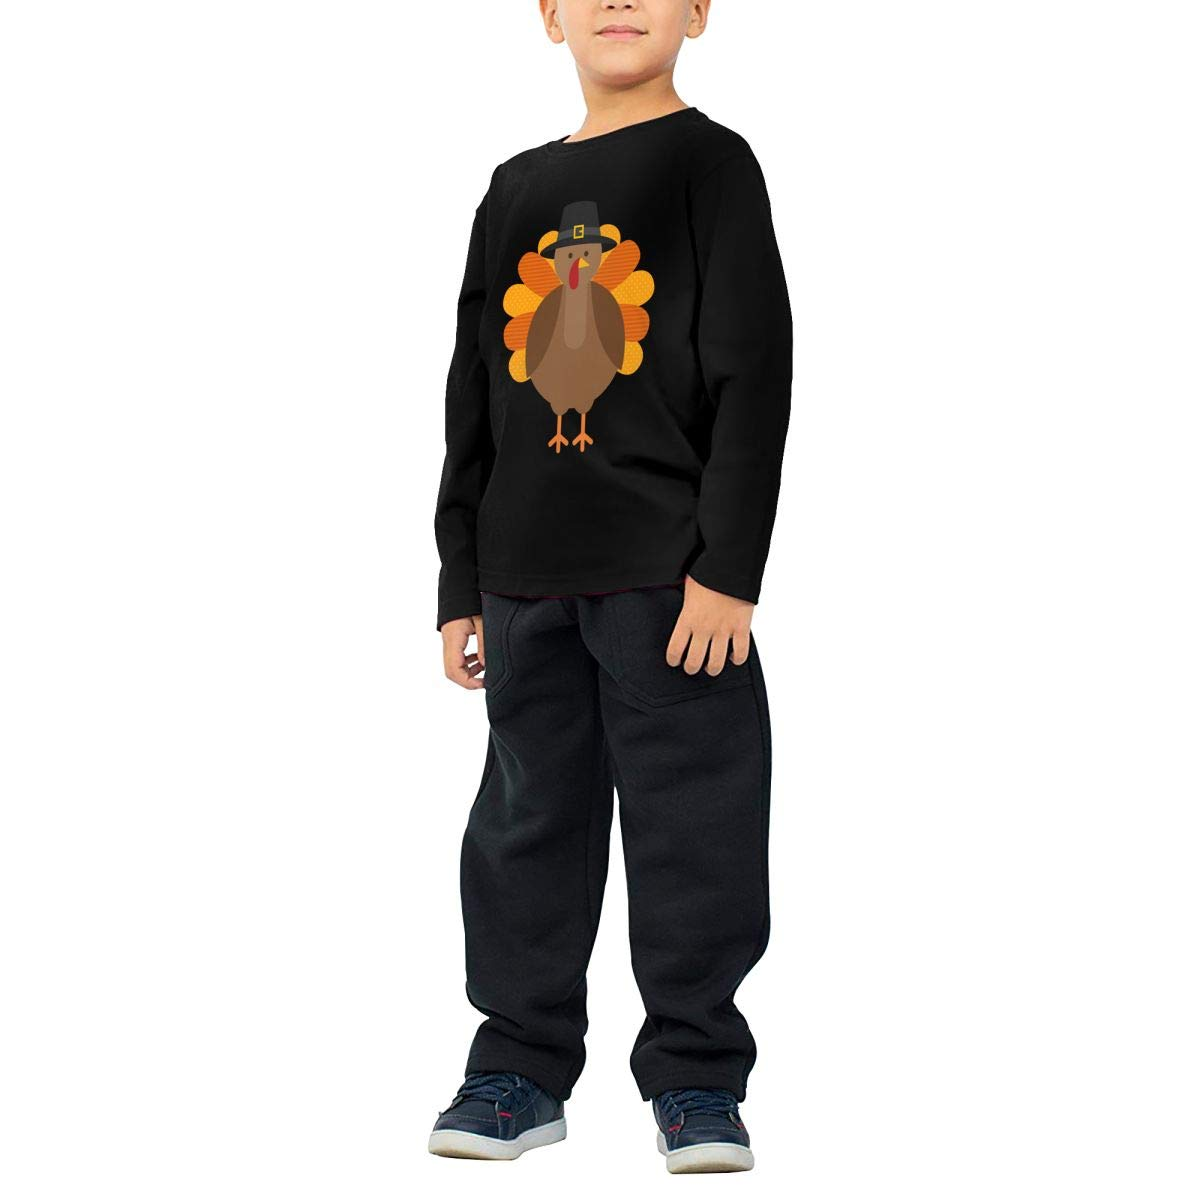 Glitter Rainbow Childrens Black Cotton Long Sleeve Round Neck T Shirt for Boy Or Girl